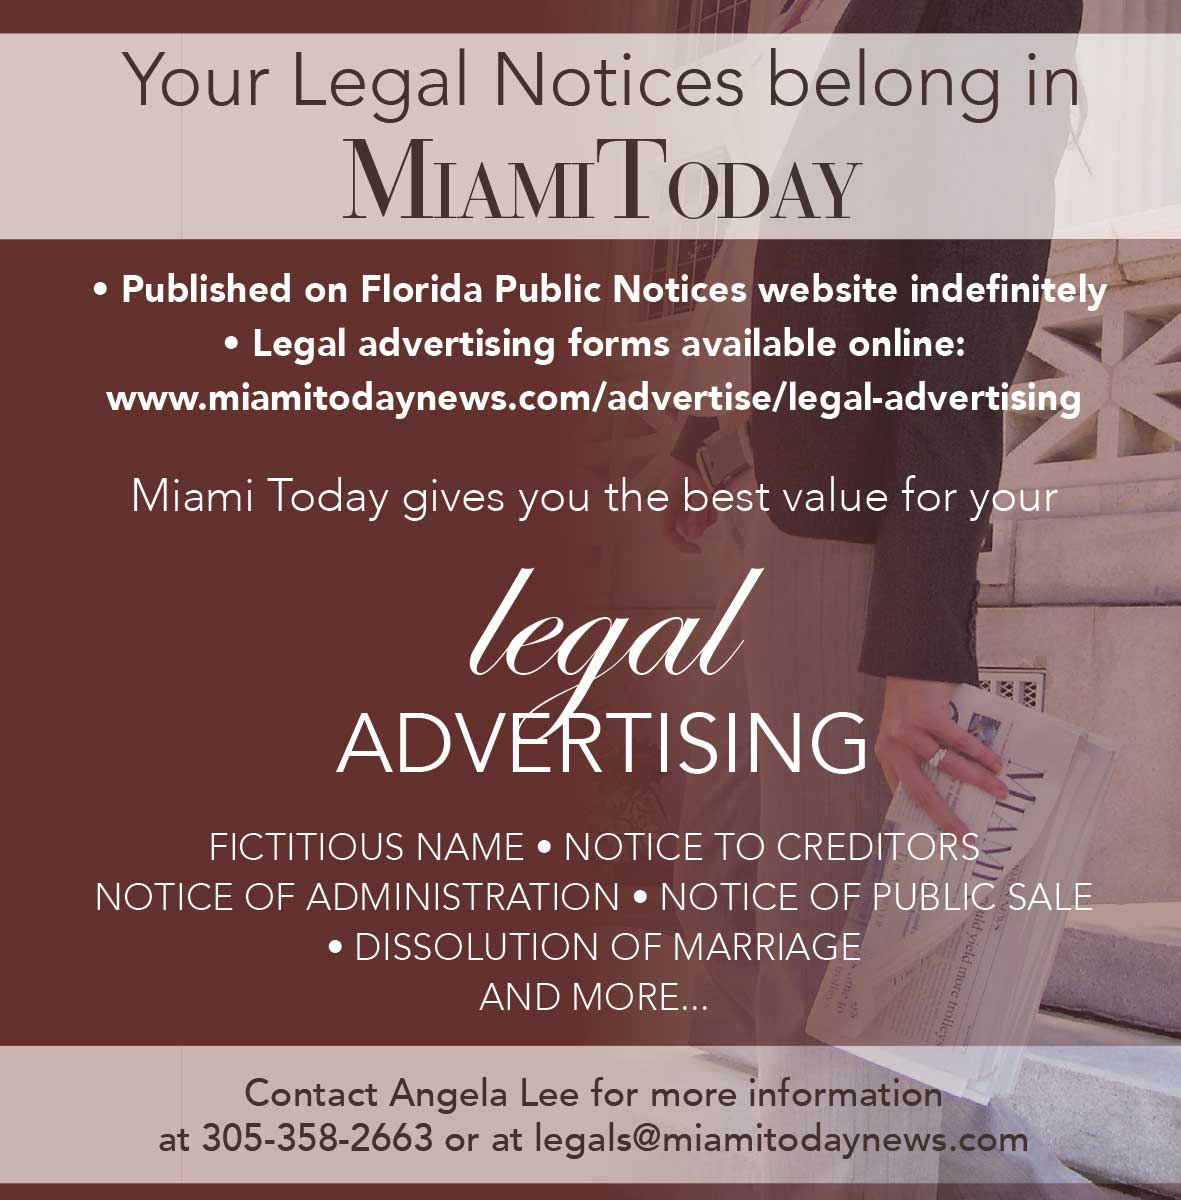 Legal Advertising